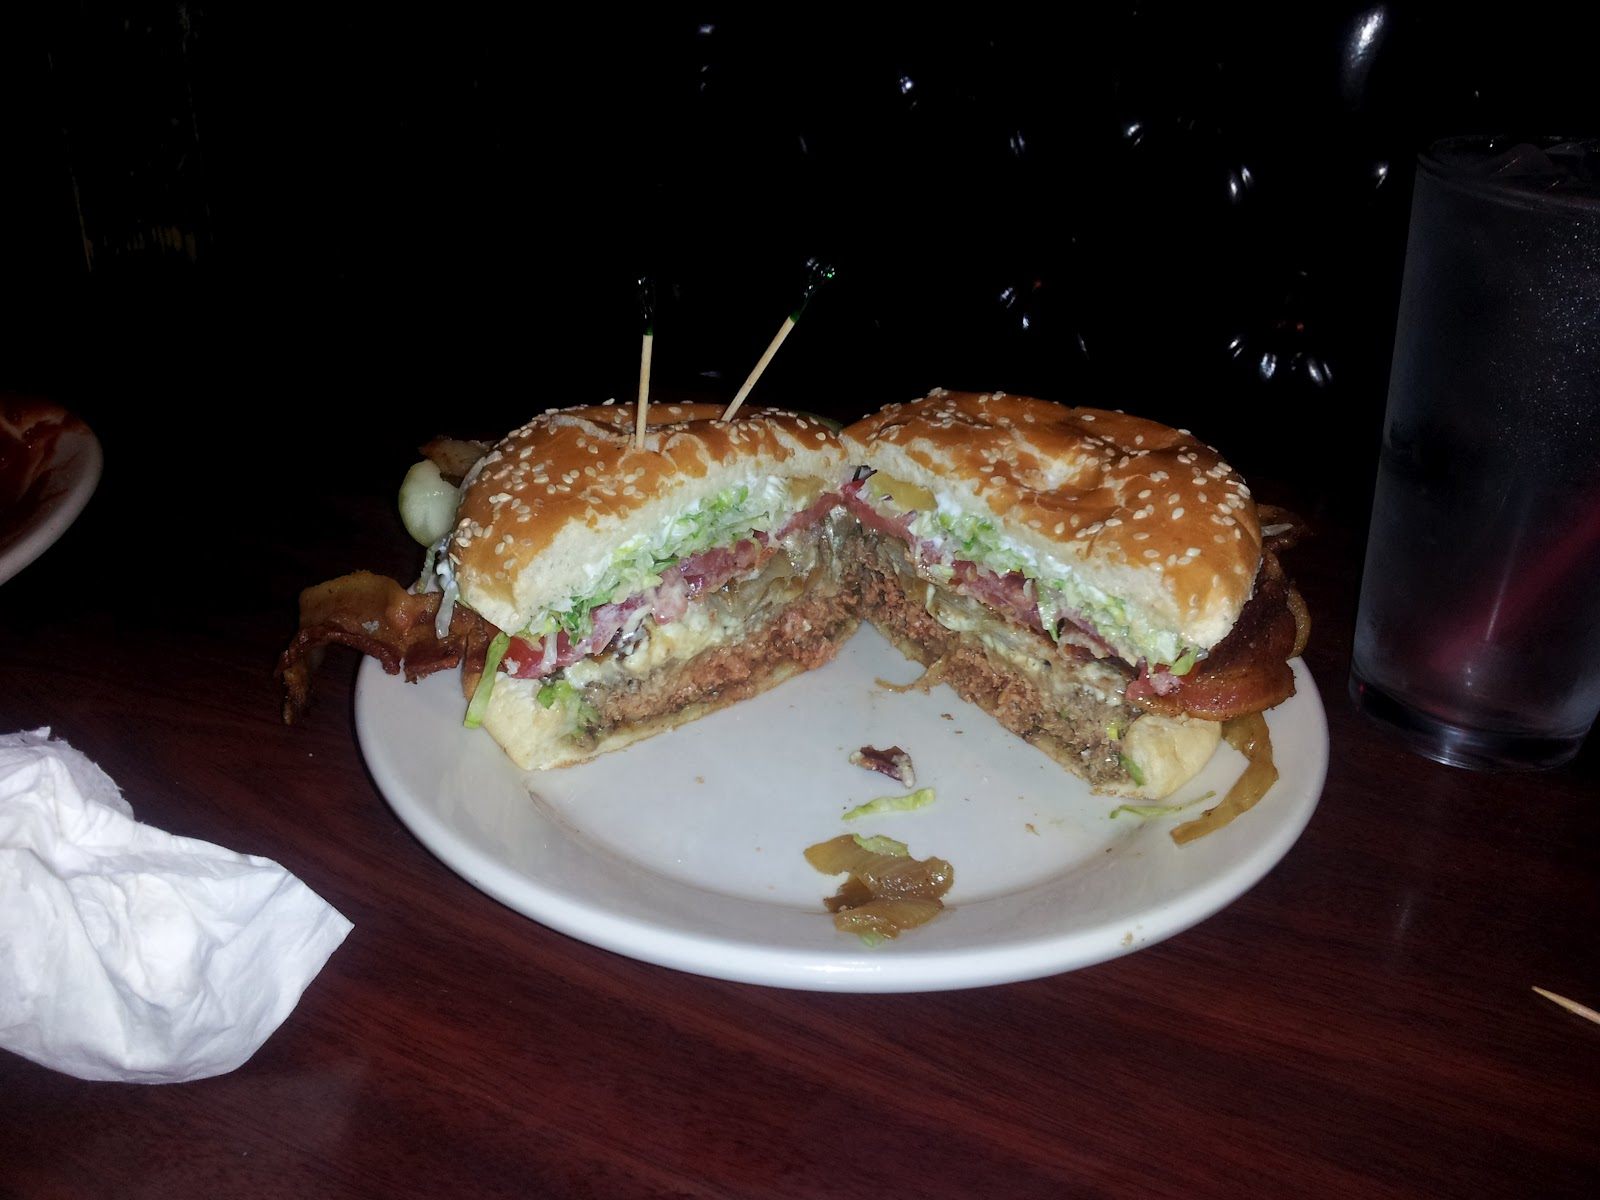 Ben&39s Food Review: Redcoat Tavern - Royal Oak MI